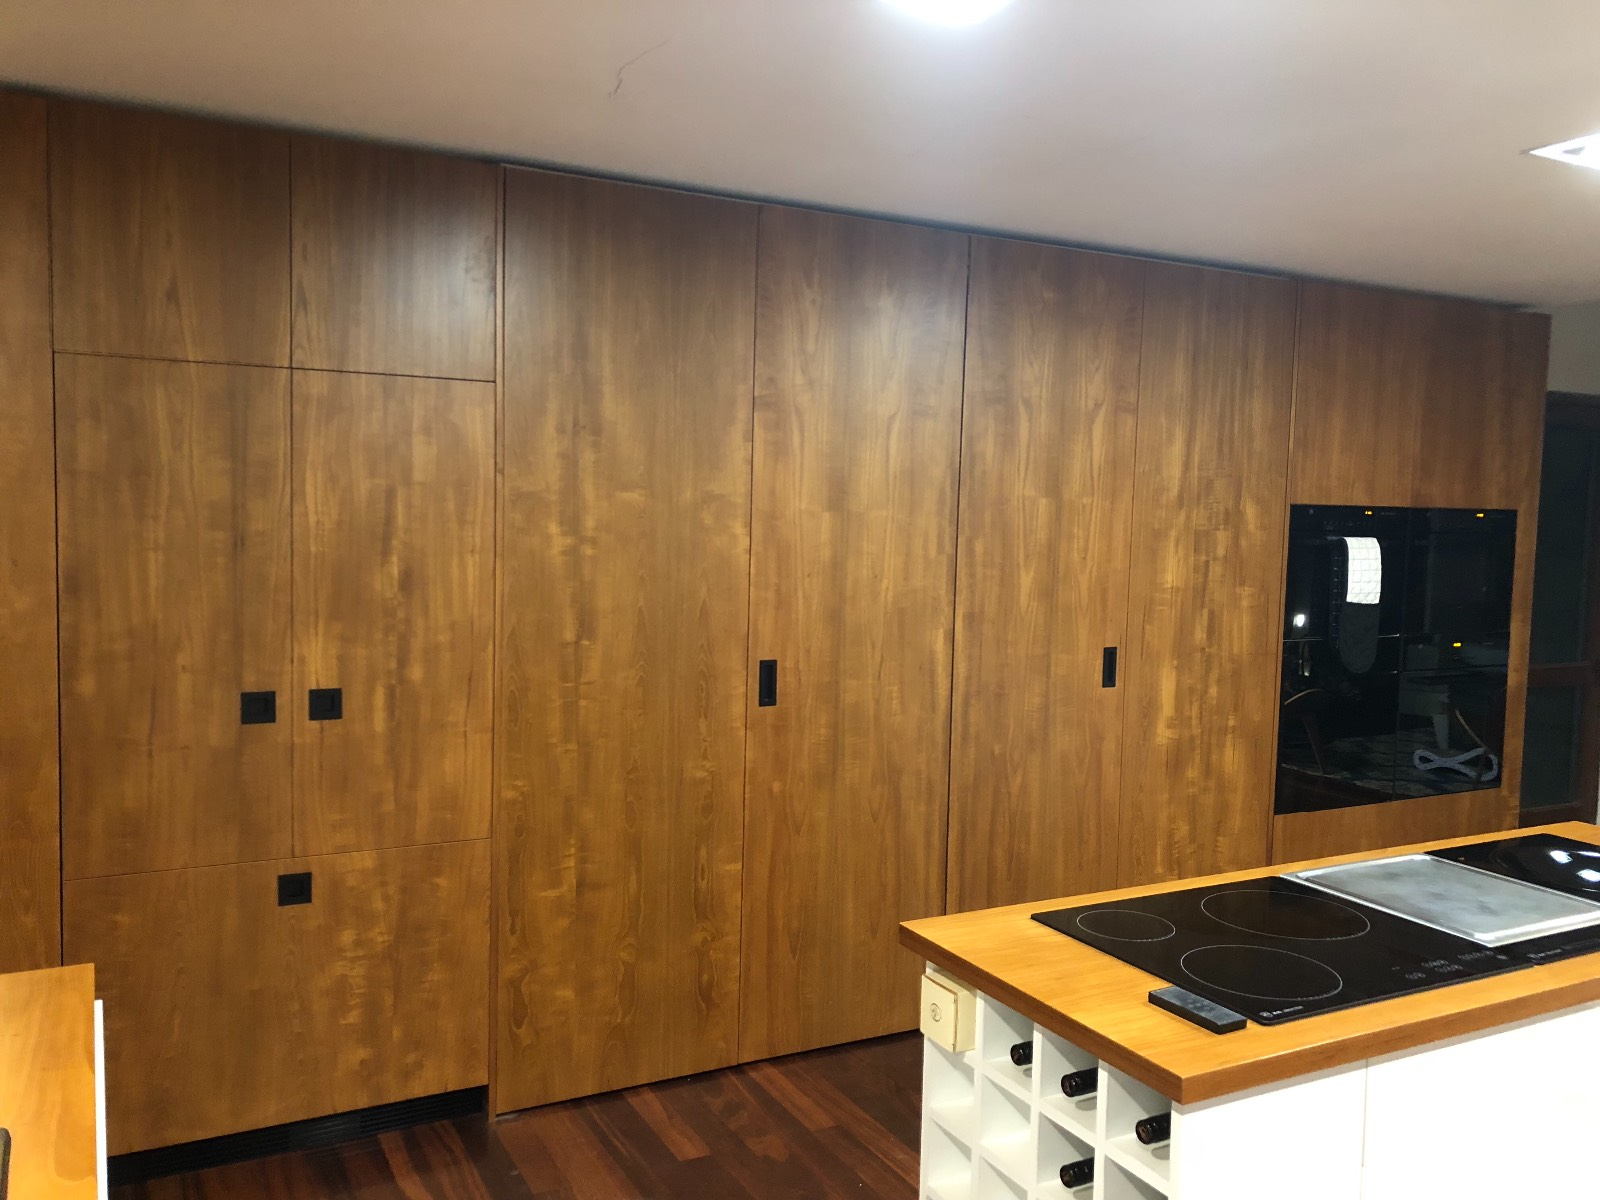 Kitchen cupboards that look like drawers?